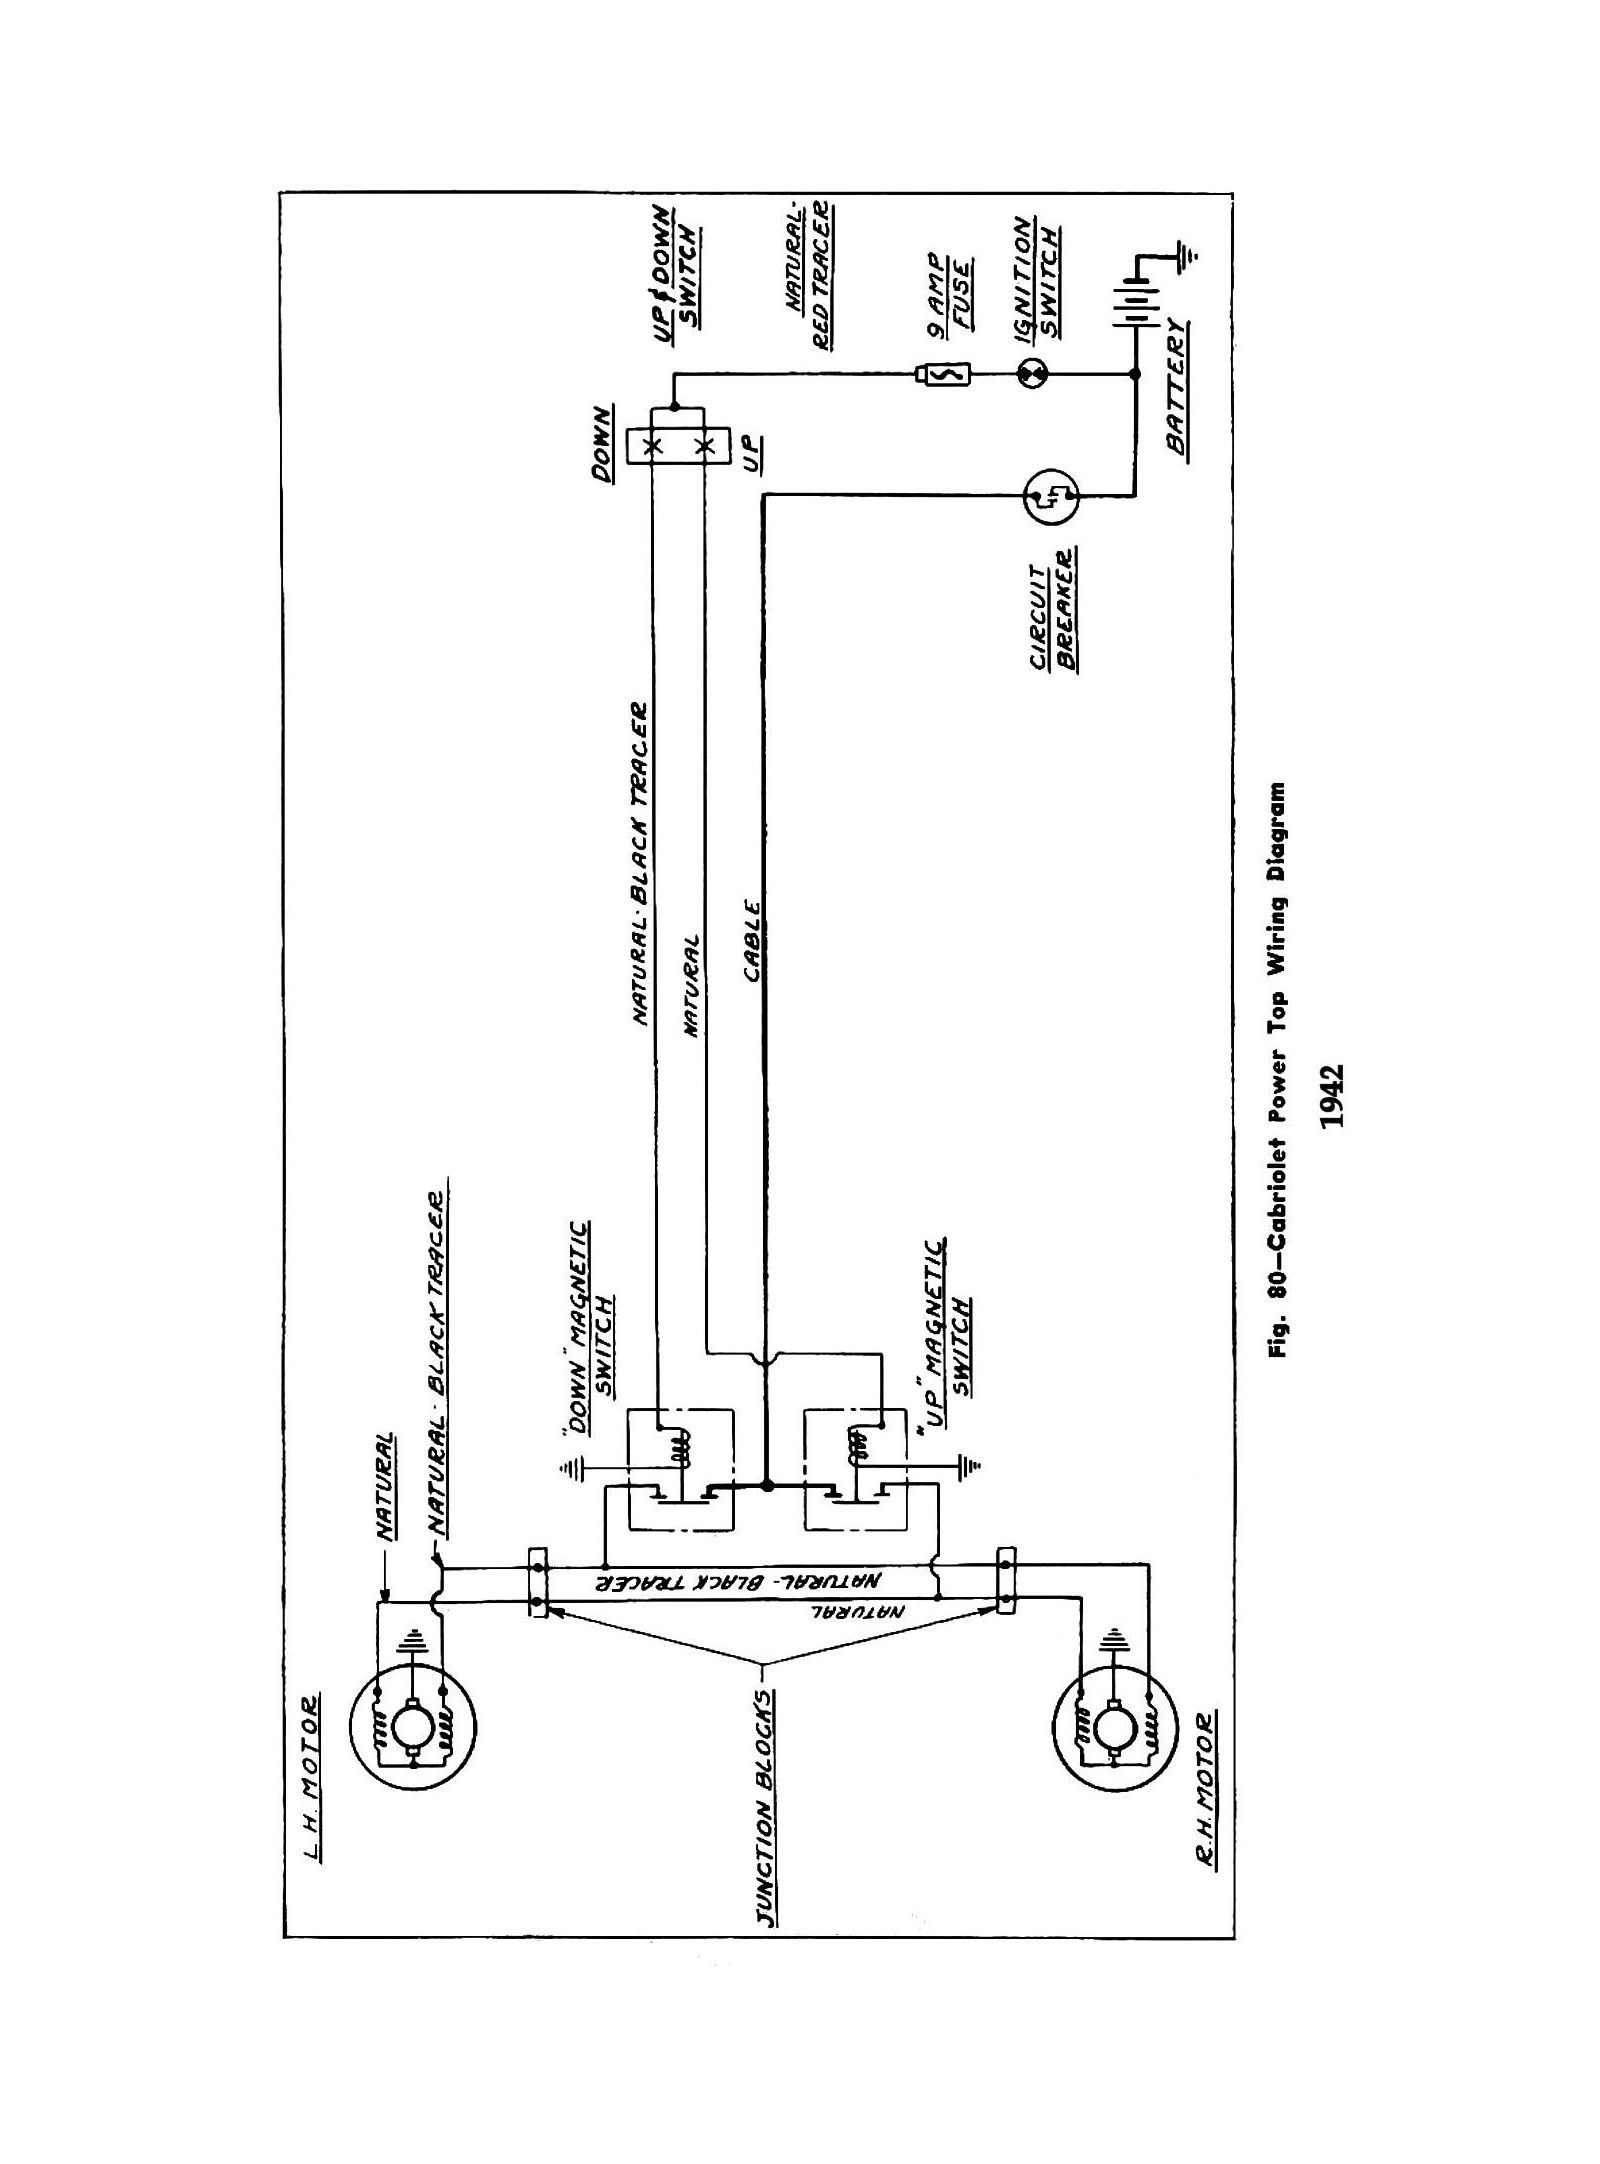 1942 Chevy Wiring Diagram Wiring Diagram Gol